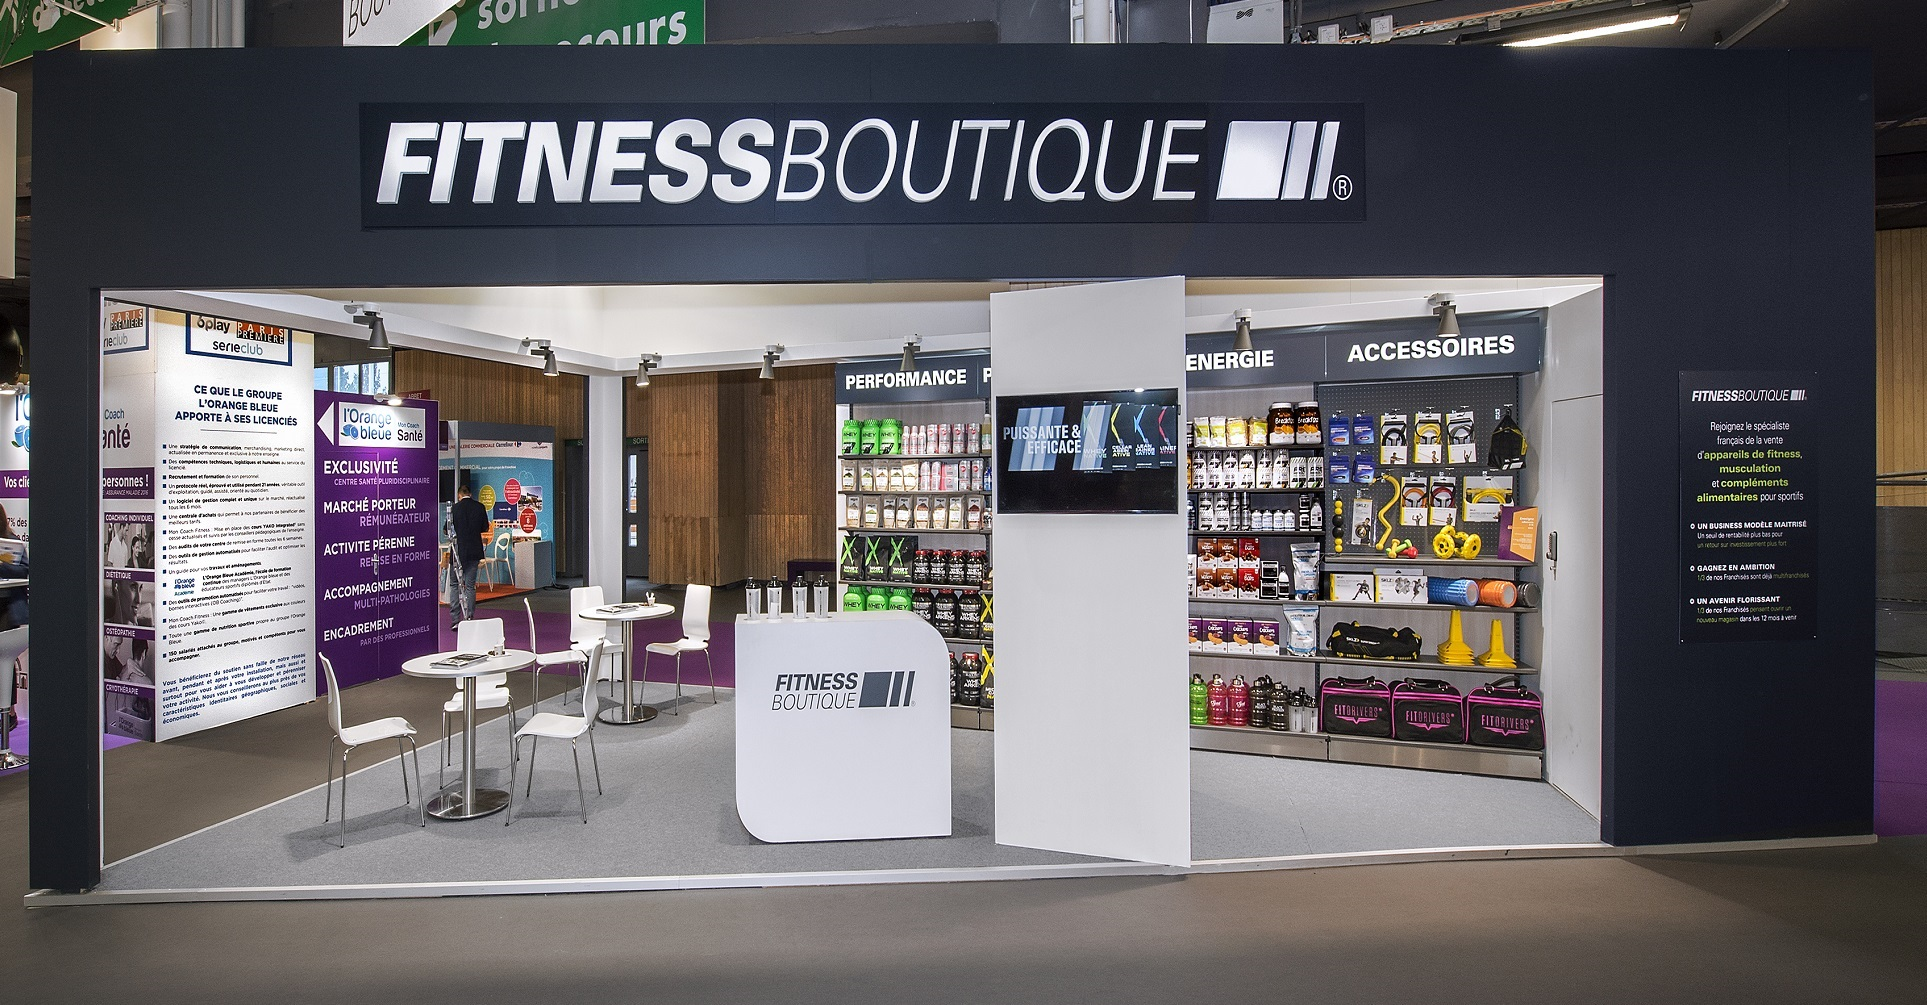 Salon De La Randonnée 2017 Paris Bilan Du Salon De La Franchise Et Du Bodyfitness Paris